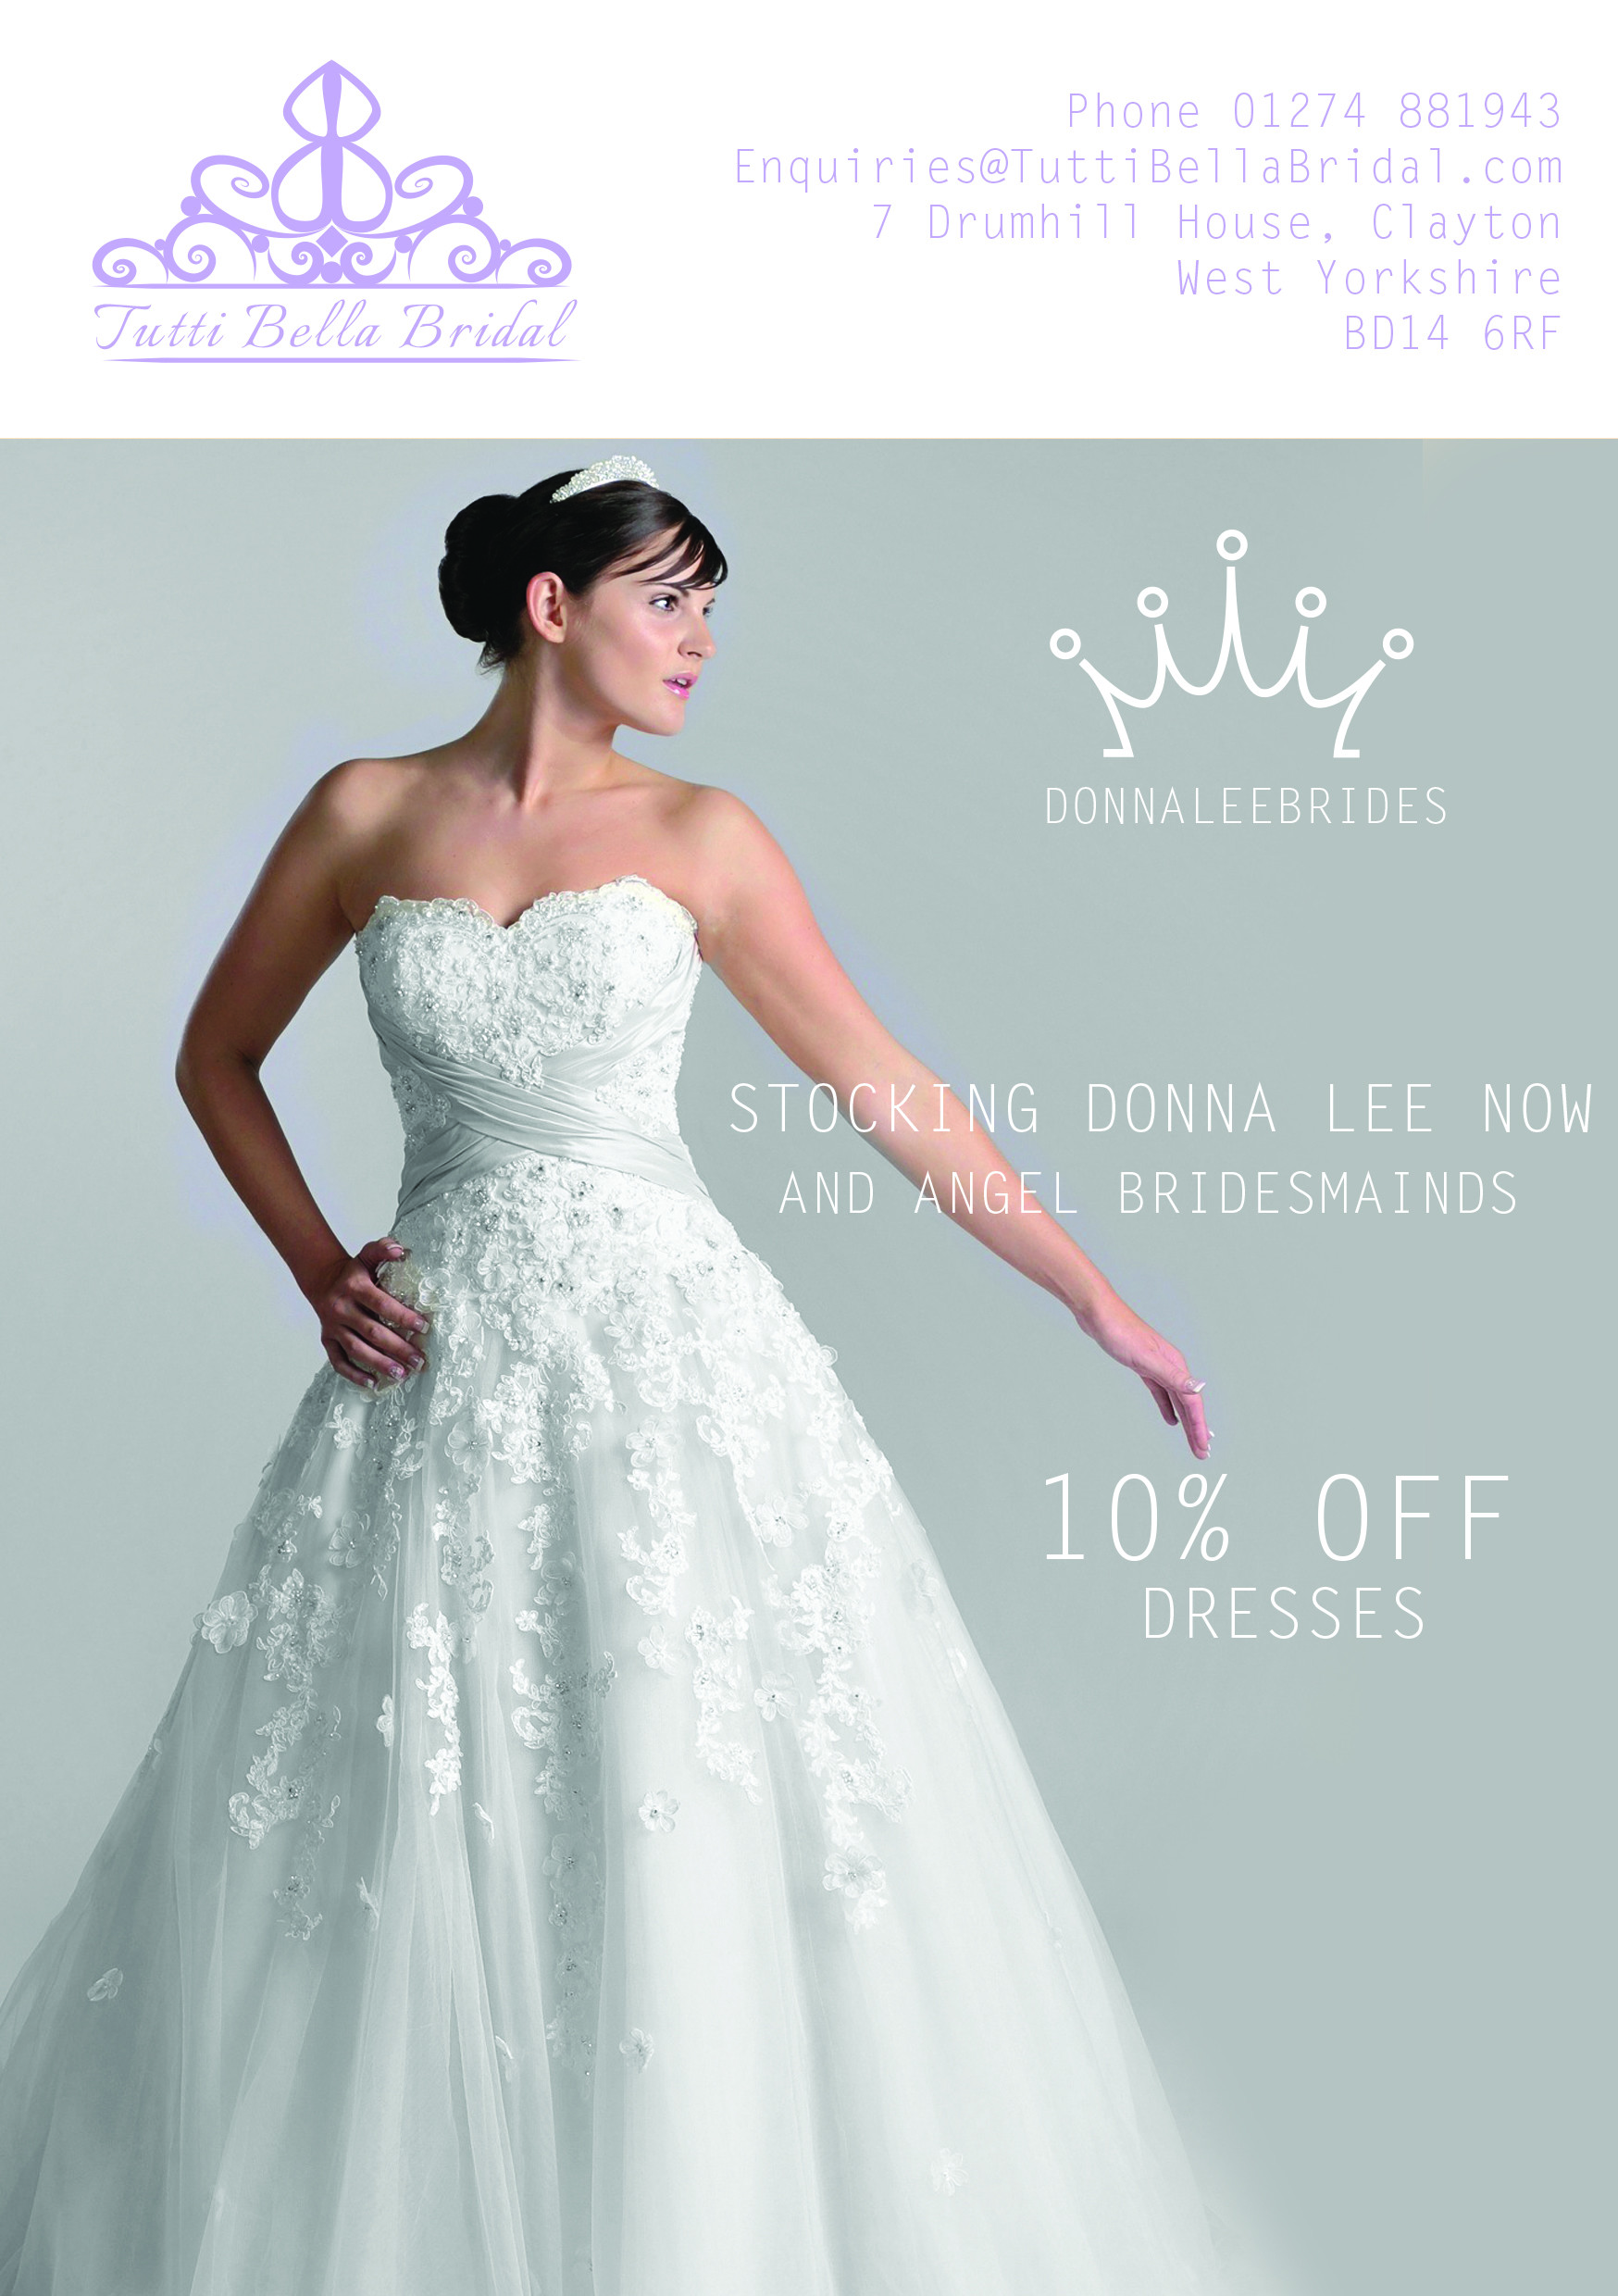 Dorable Wedding Dress Shops In West Yorkshire Picture Collection ...